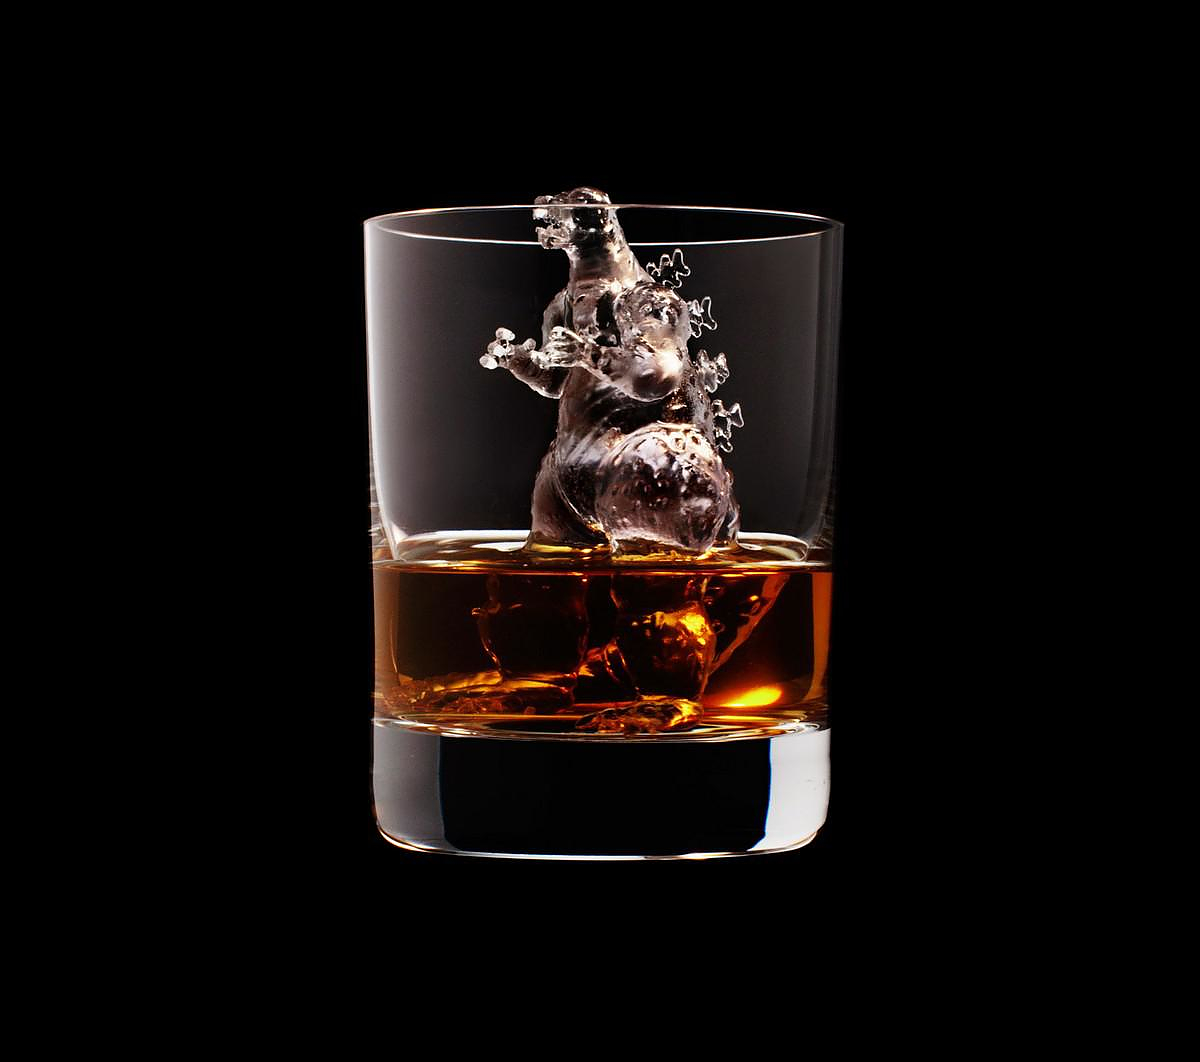 3D on the Rocks Ice Sculptures by Suntory Whisky.